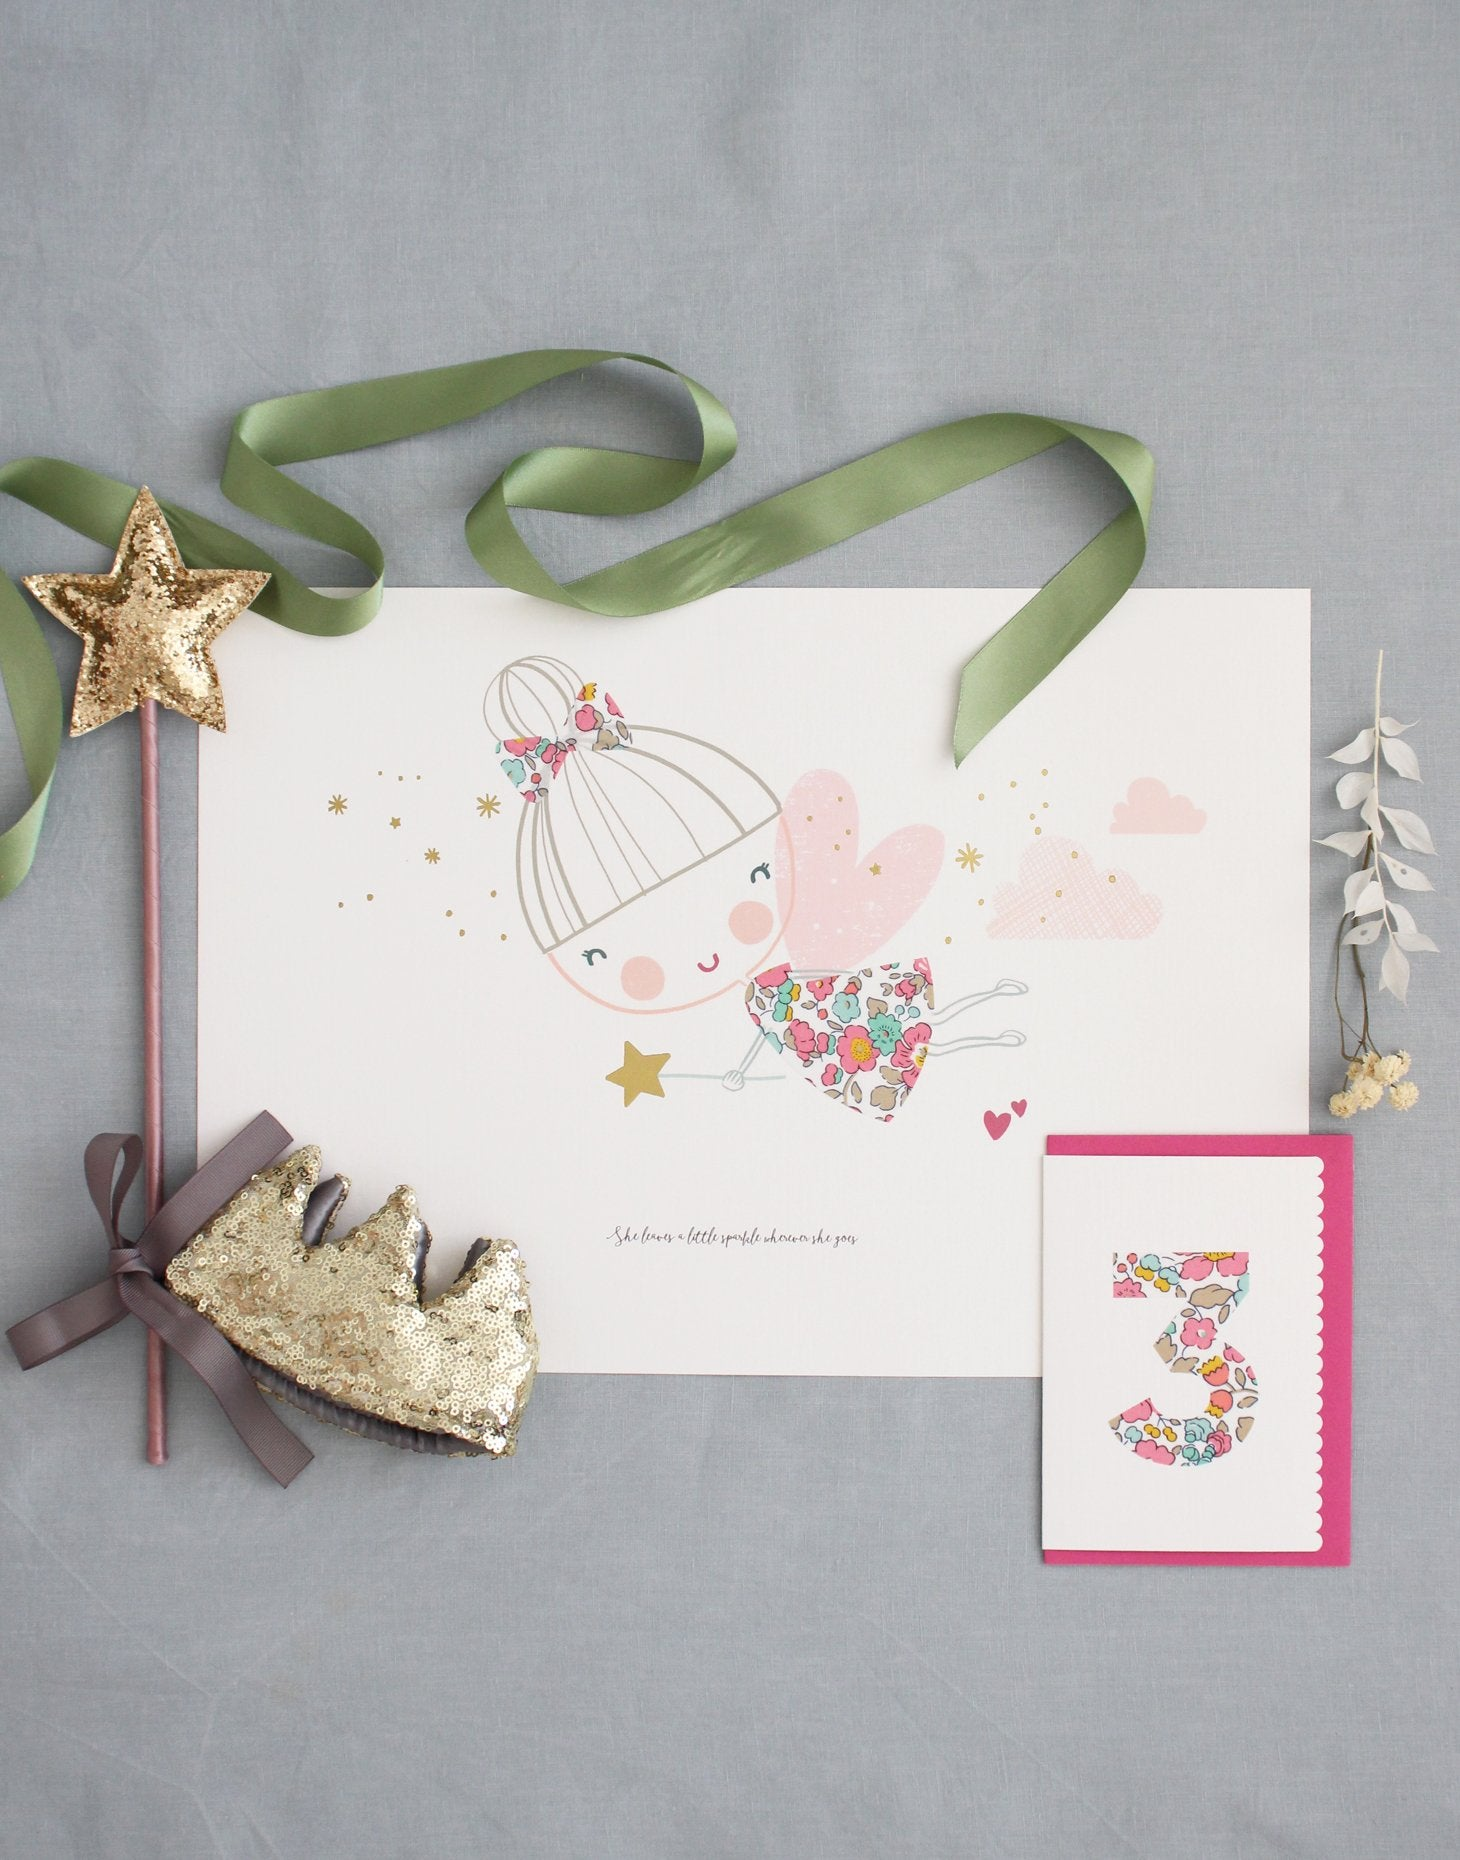 Luxury gift box for girls included Fairy print, wand, sequin crown and birthday card.